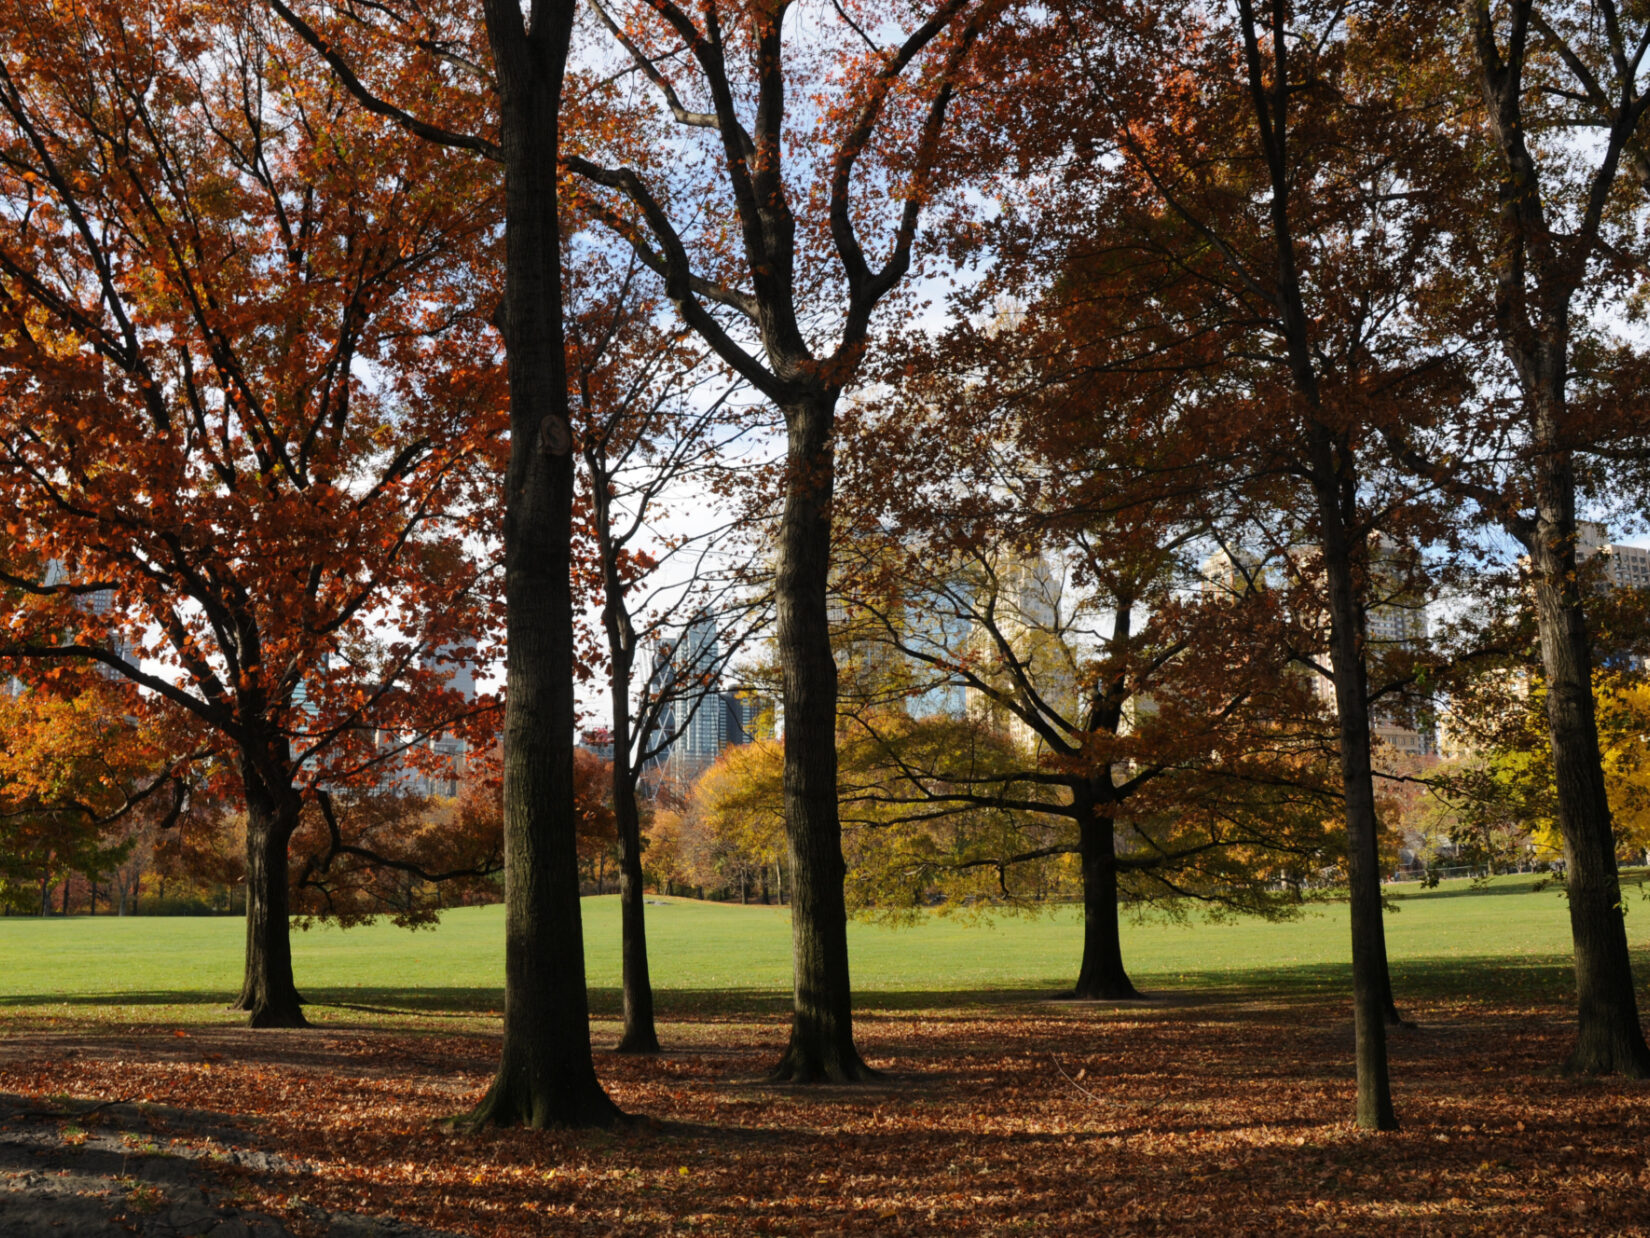 Looking through a stand of trees in autumn to the green of the grass in the distance